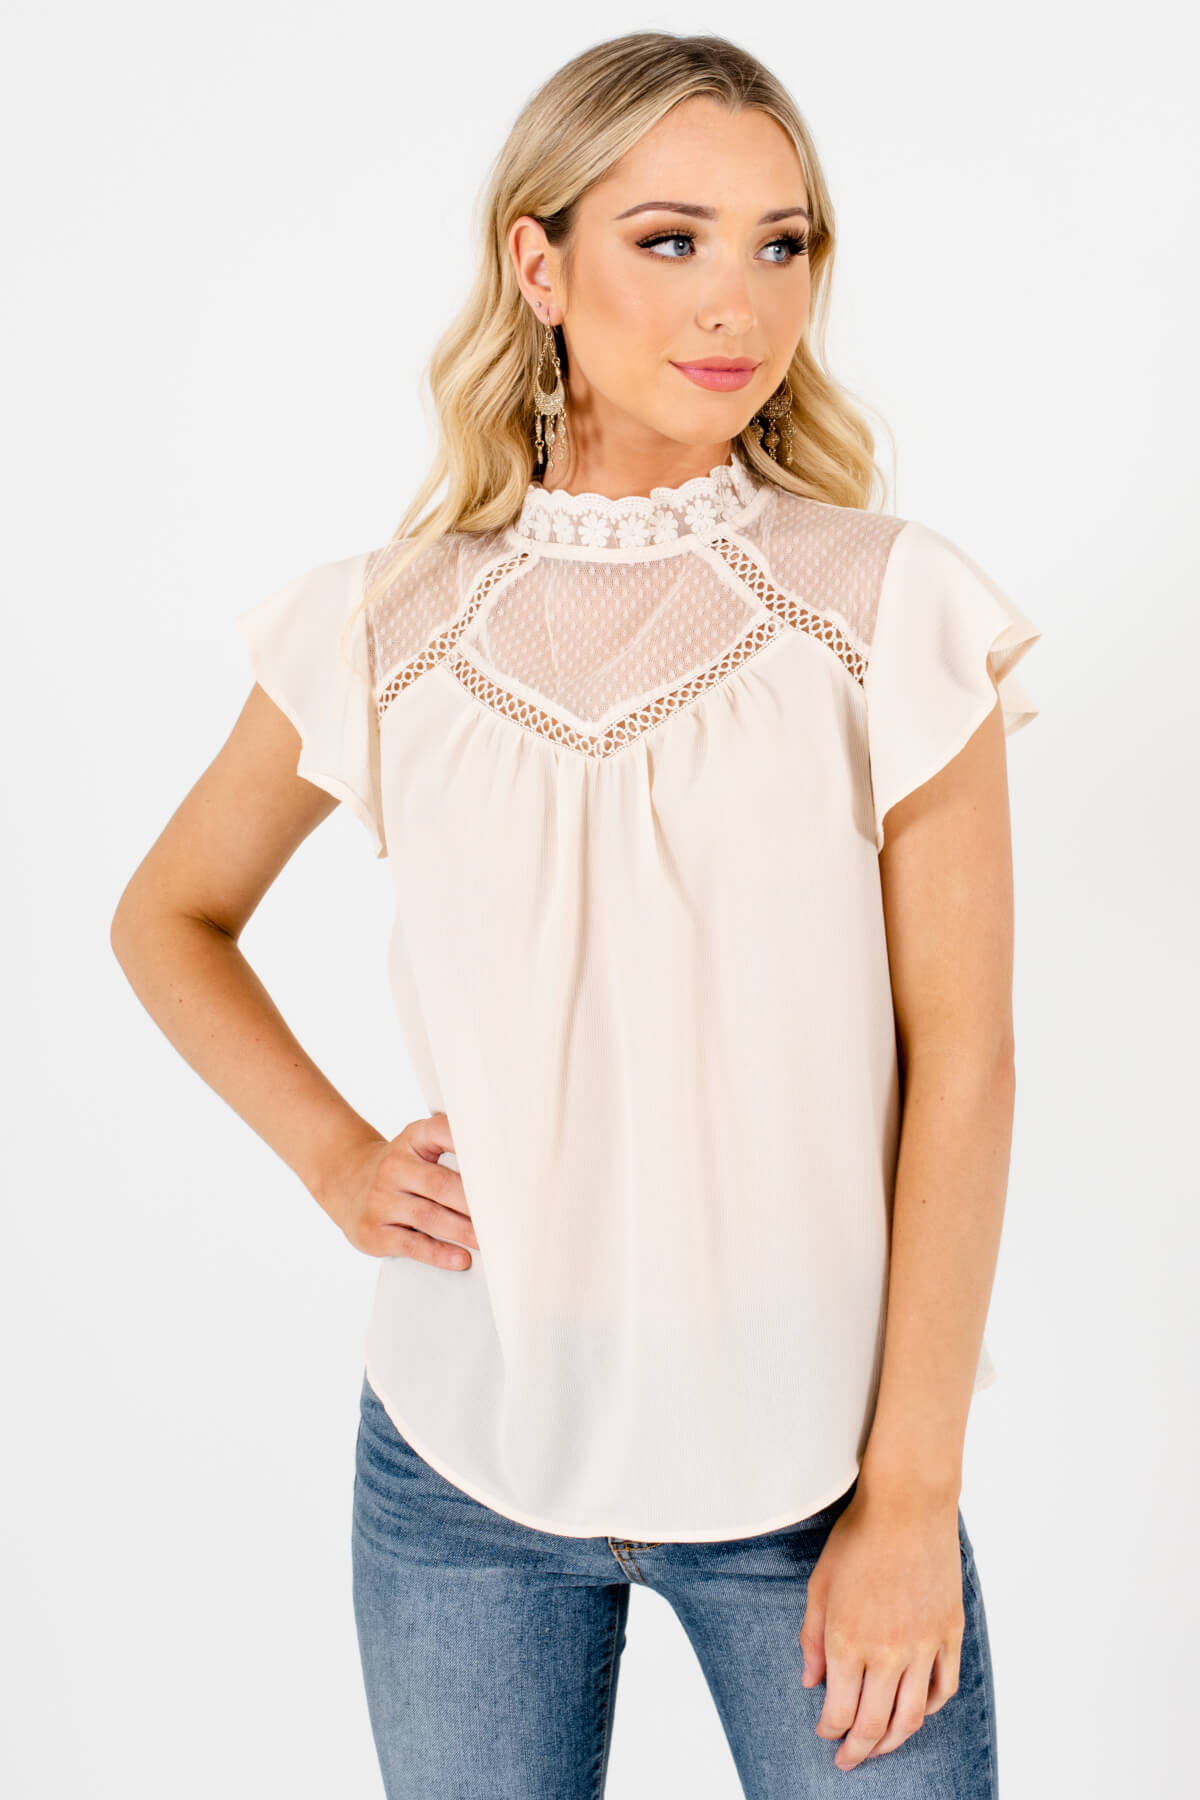 Cream Semi-Sheer Lace Neckline Boutique Blouses for Women